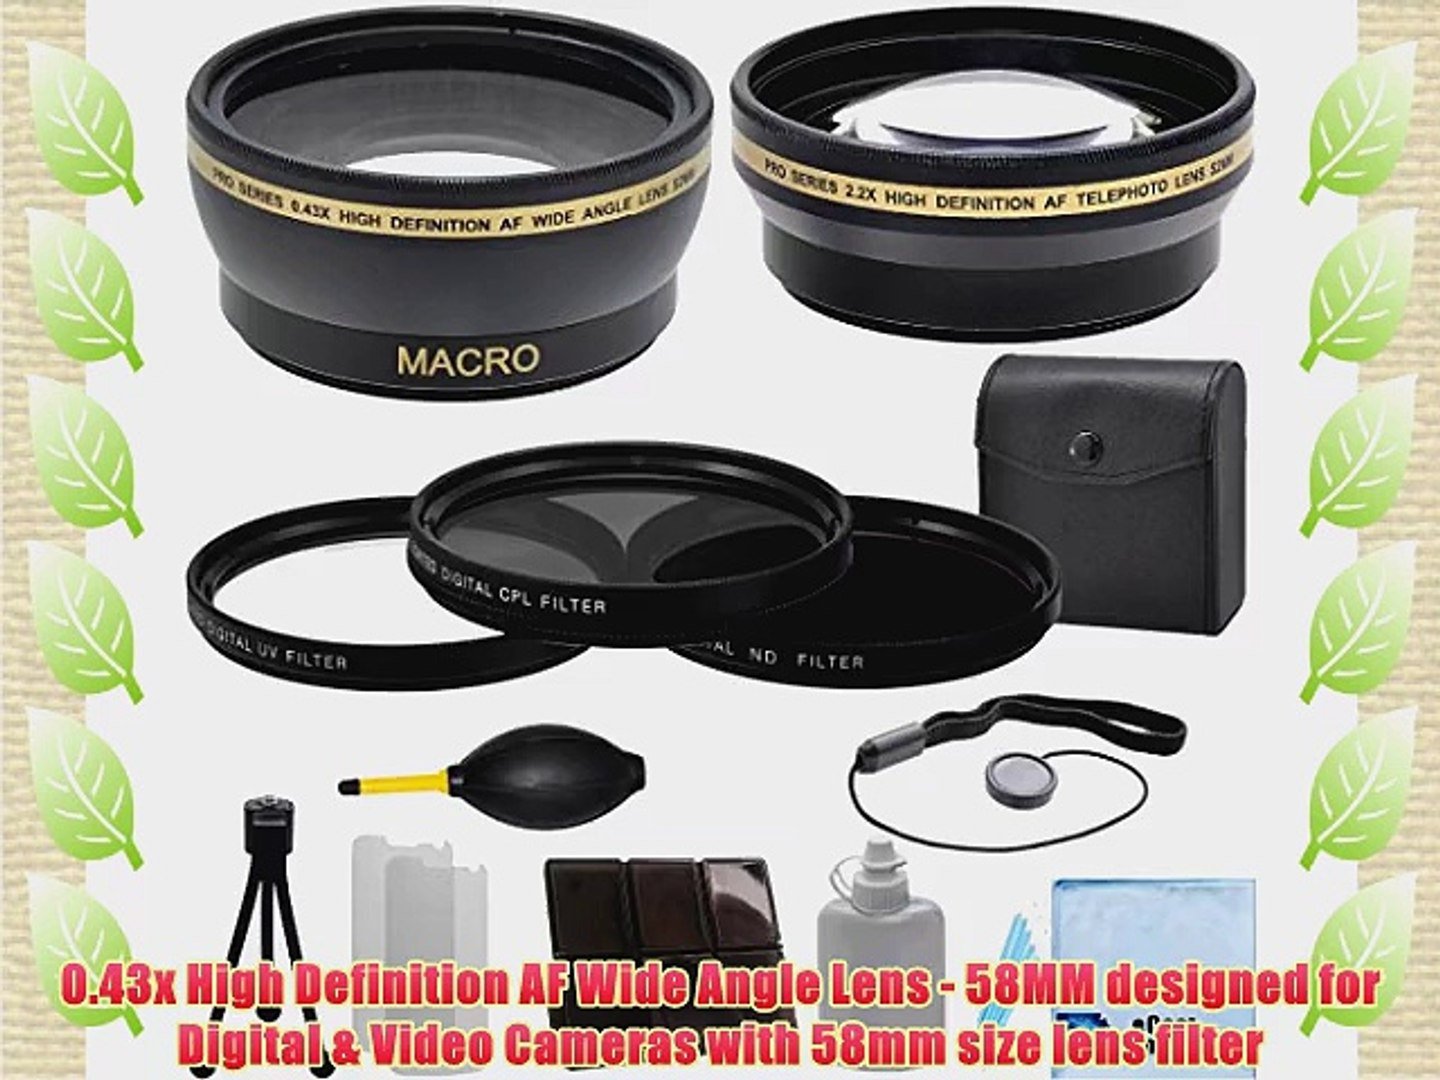 Vivitar 58mm 0.43x Wide Angle Lens 4Pc Close Up Lens 2.2x Telephoto Lens Canon EF 50mm 1.4 USM Lens Canon EF-S 55-250mm 4-5.6 IS STM Lens Canon E Lens Hood with Deluxe Lens Accessories Kit for Canon EF 75-300mm 4-5.6 III Lens 3 Pieces Filter Set